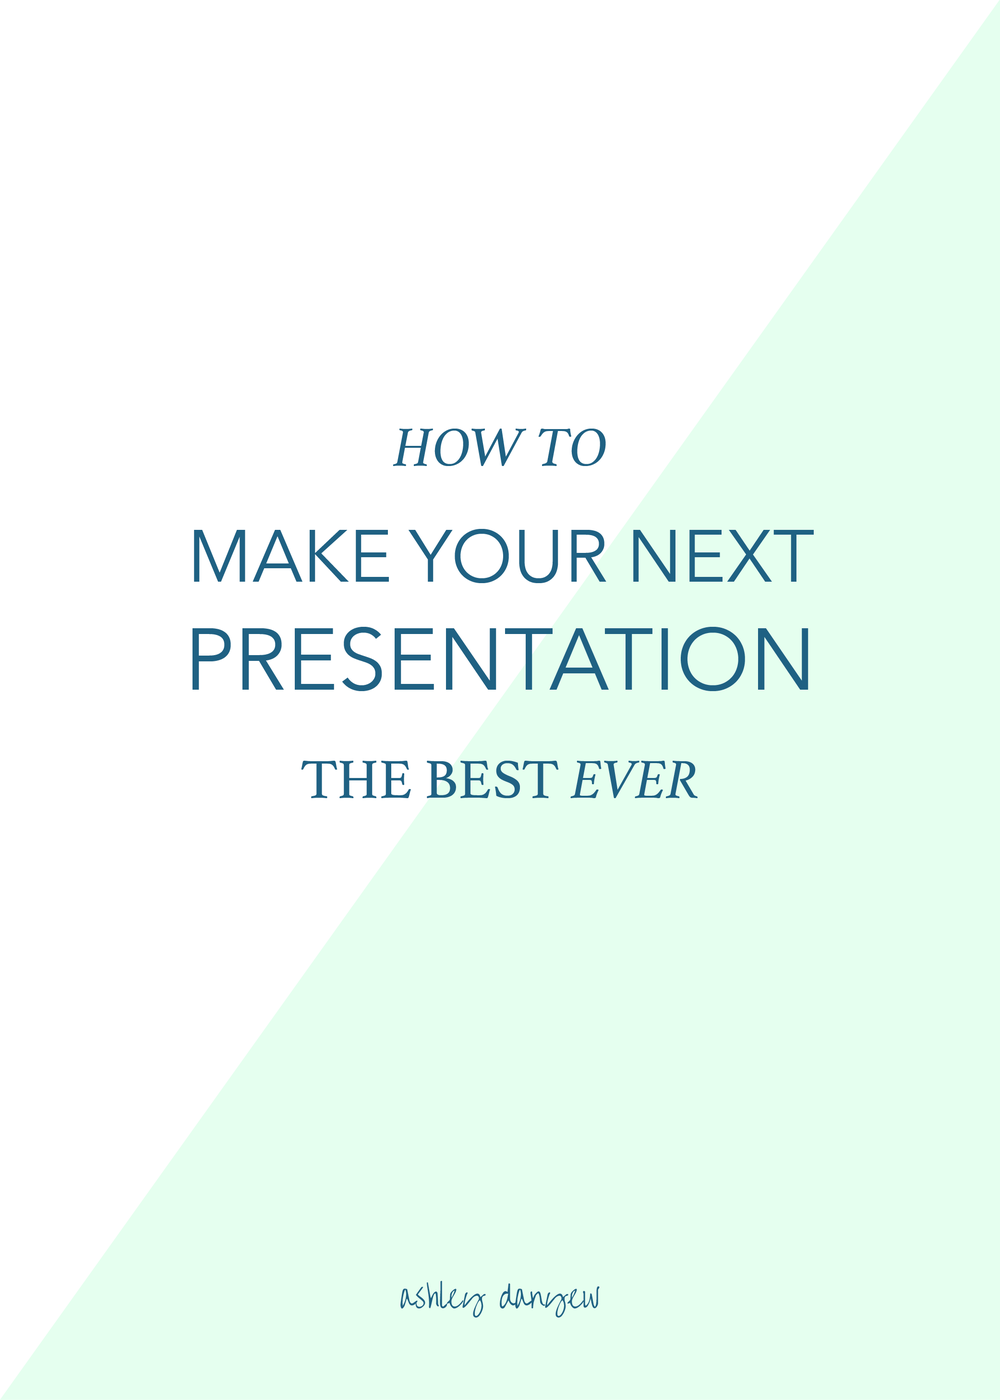 How to Make Your Next Presentation the Best Ever-01.png